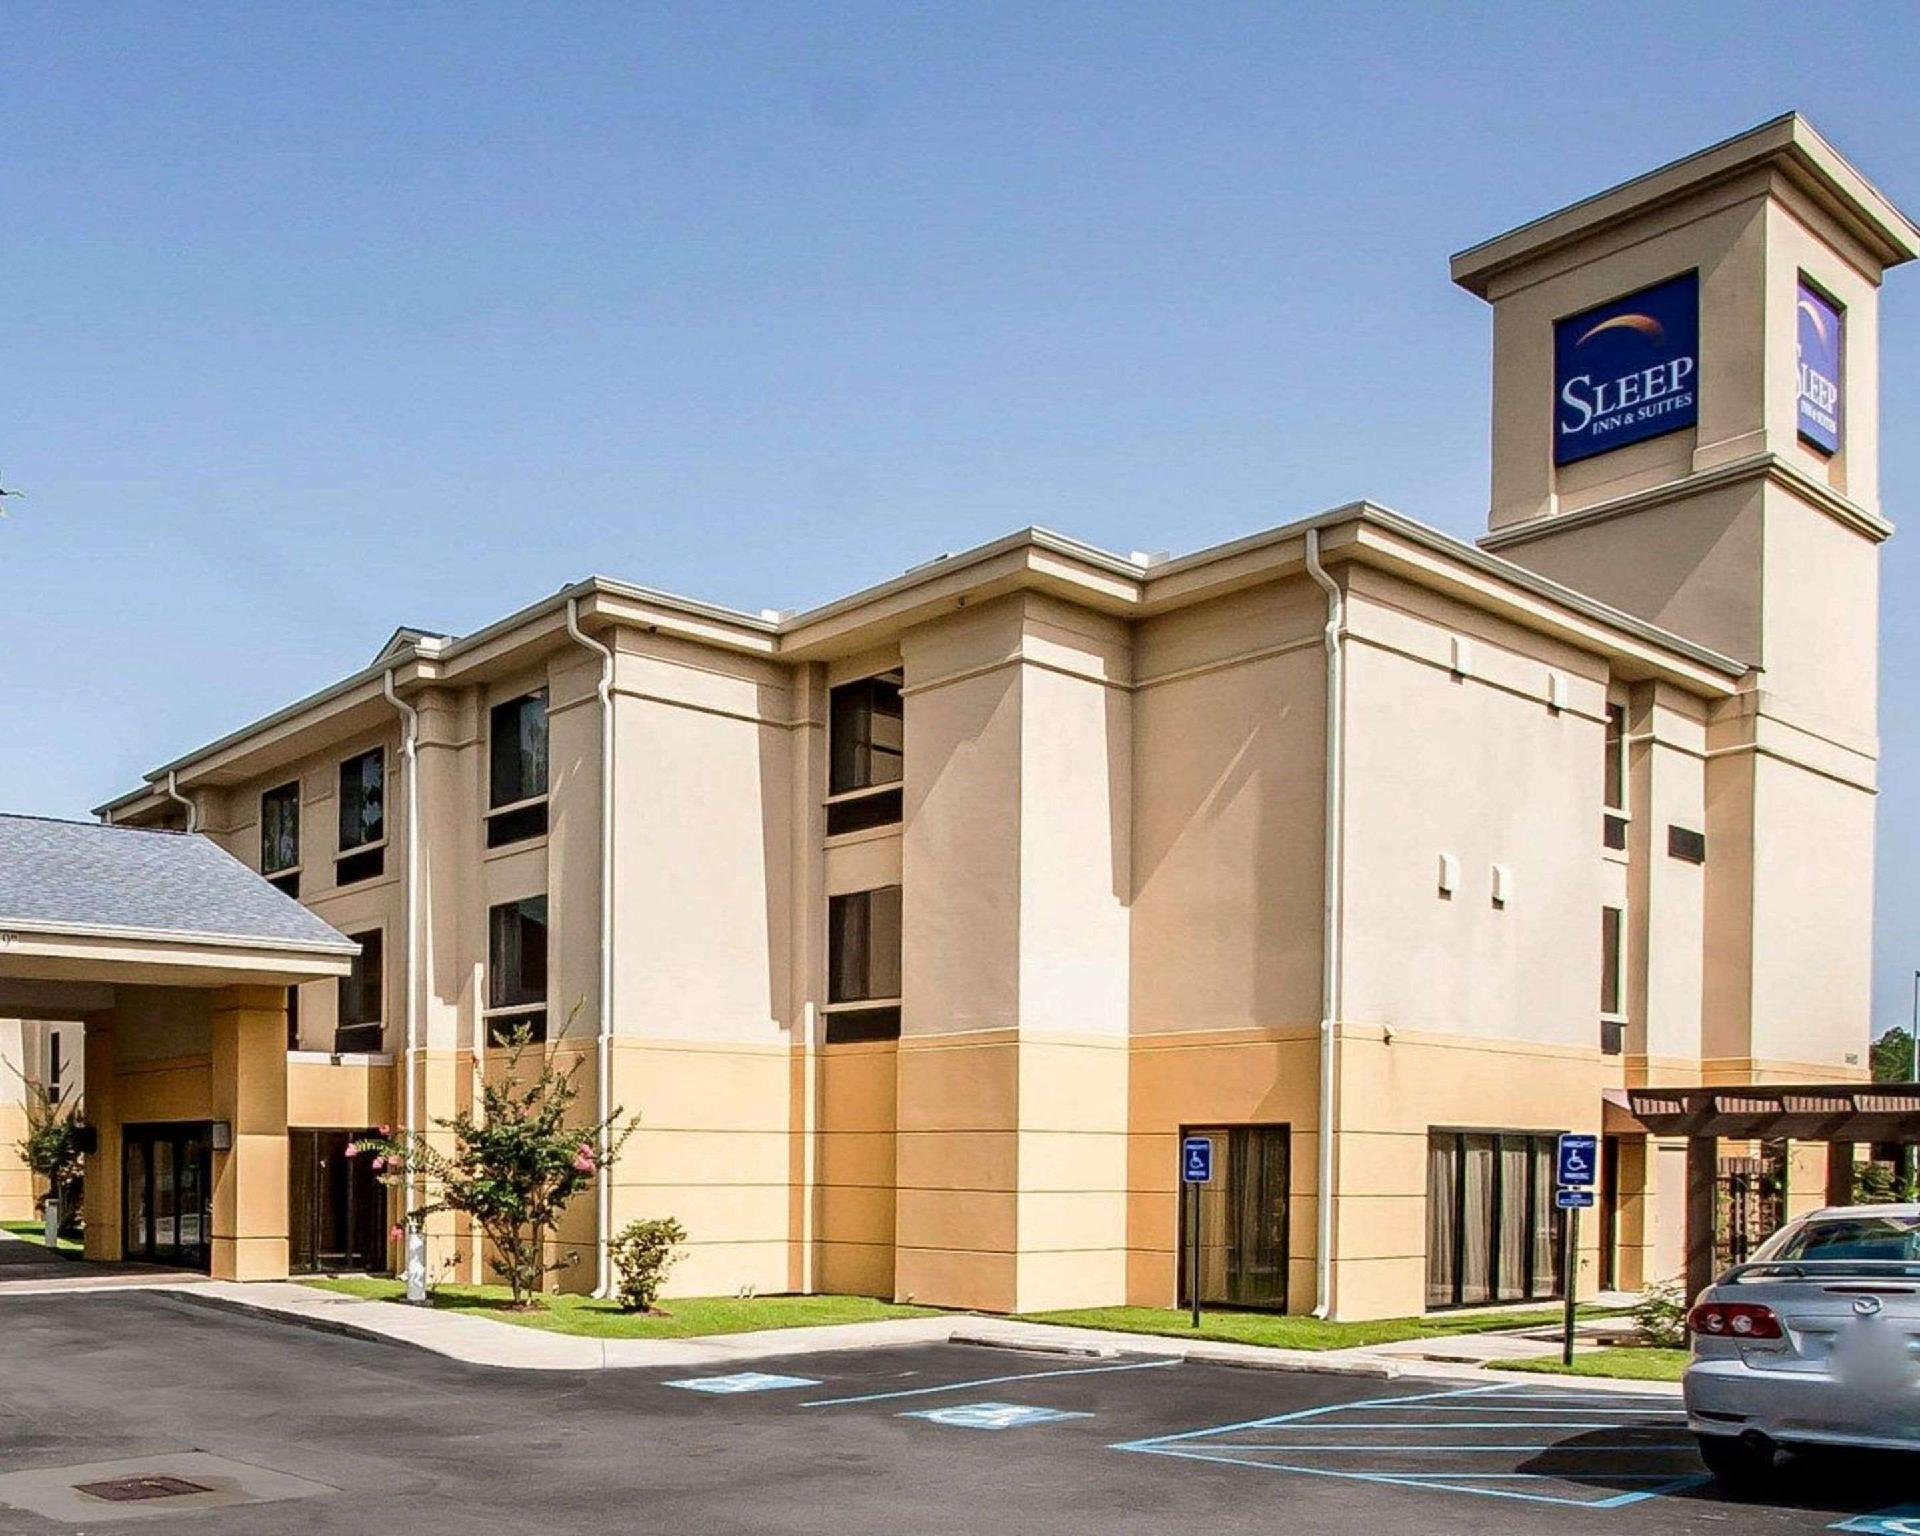 Sleep Inn and Suites Hattiesburg, Forrest